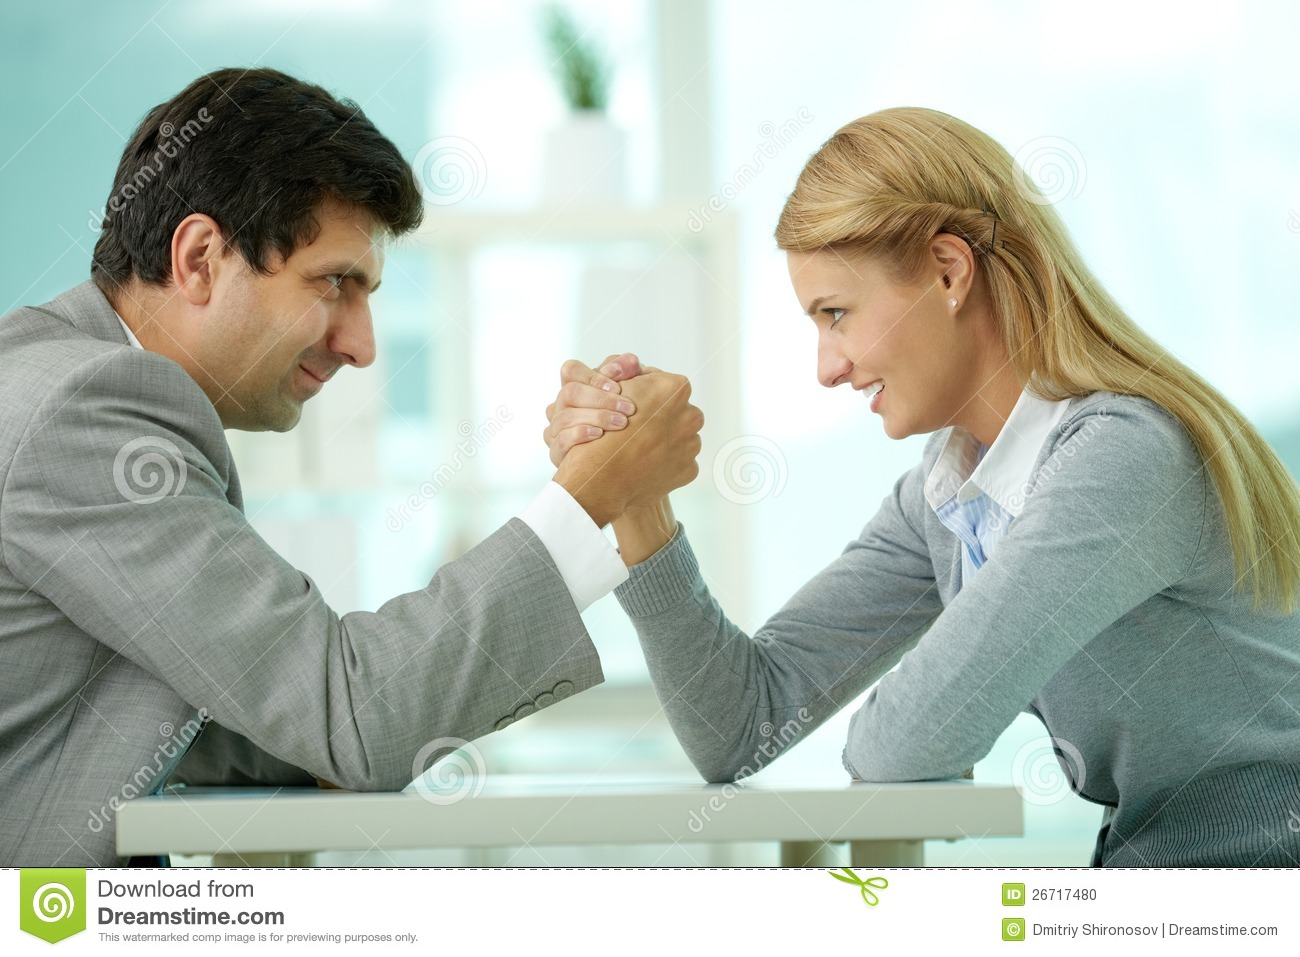 ... and women in arm wrestling gesture on working table during meeting